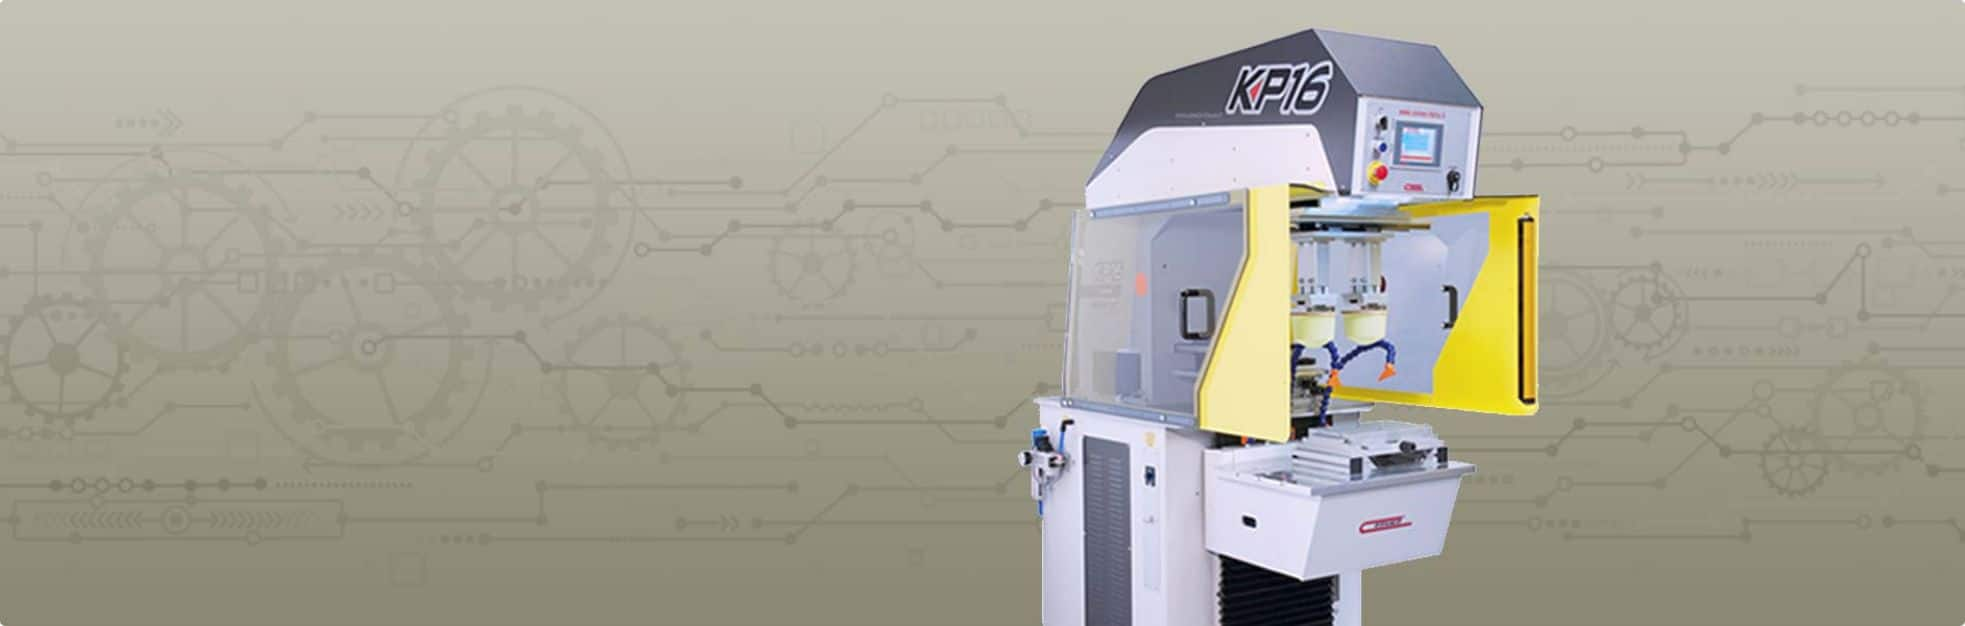 KP16 electro-pneumatic Printer